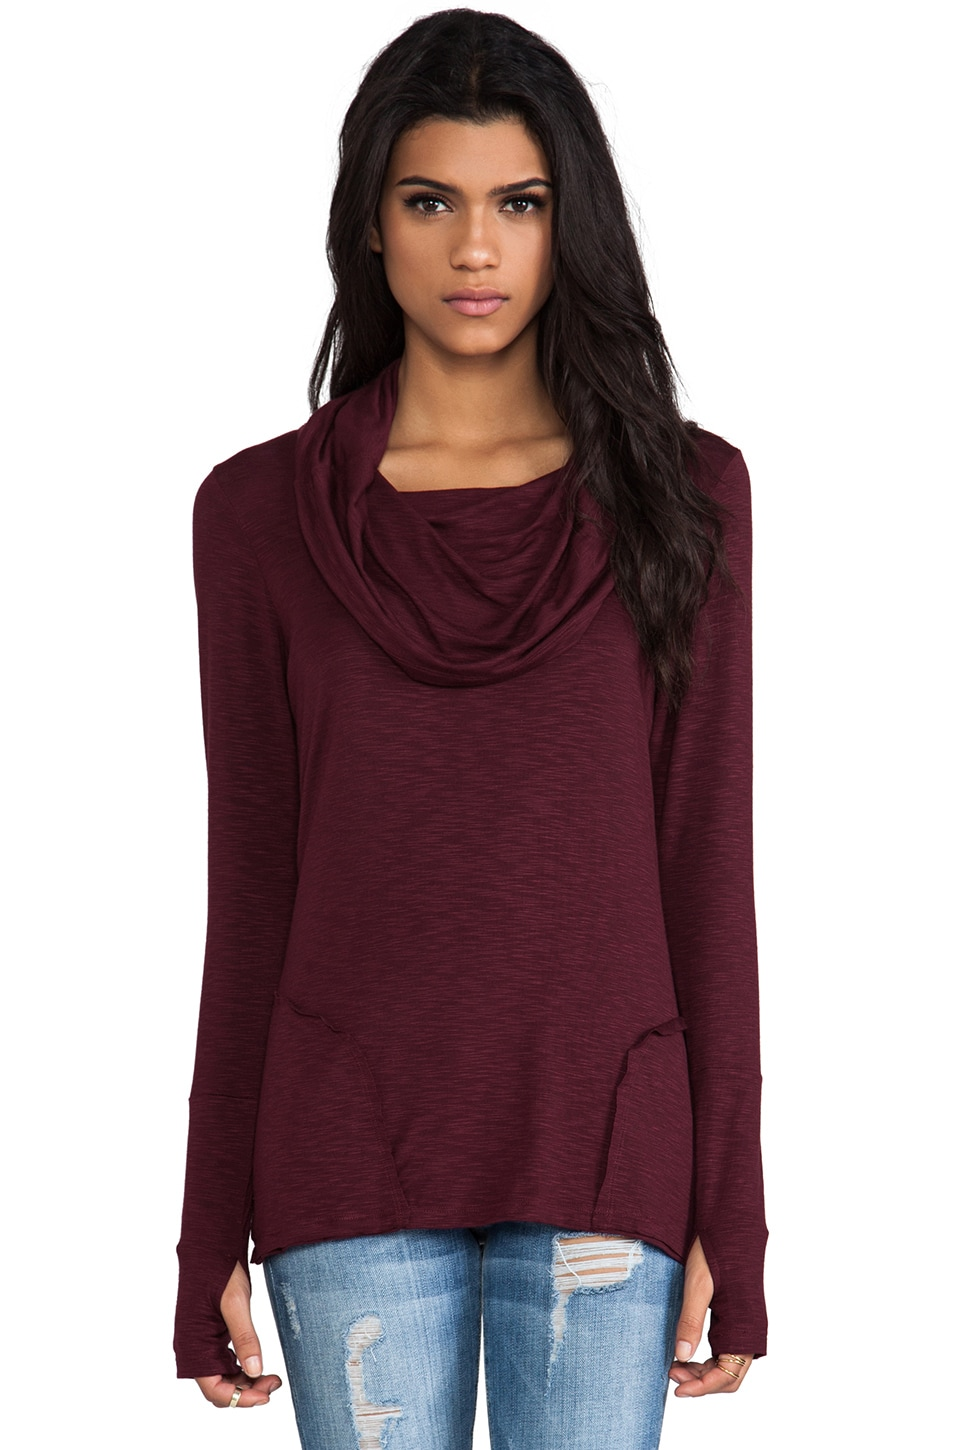 dolan Cowl Neck Long Sleeve in Burgundy